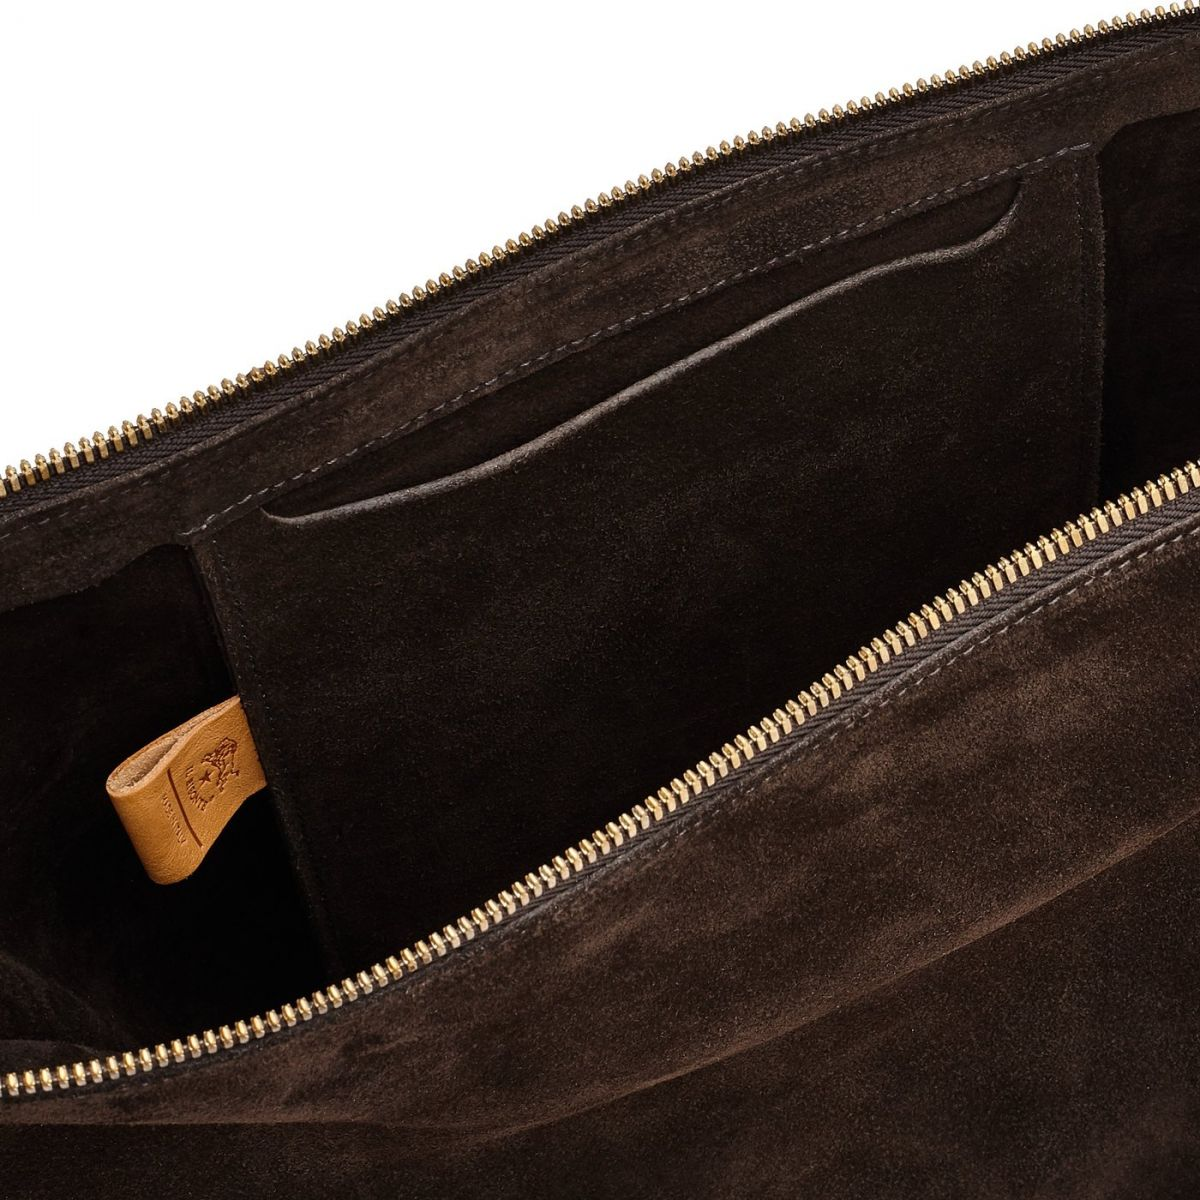 Women's Shoulder Bag  in Cowhide Leather BSH082 color Dark Brown | Details